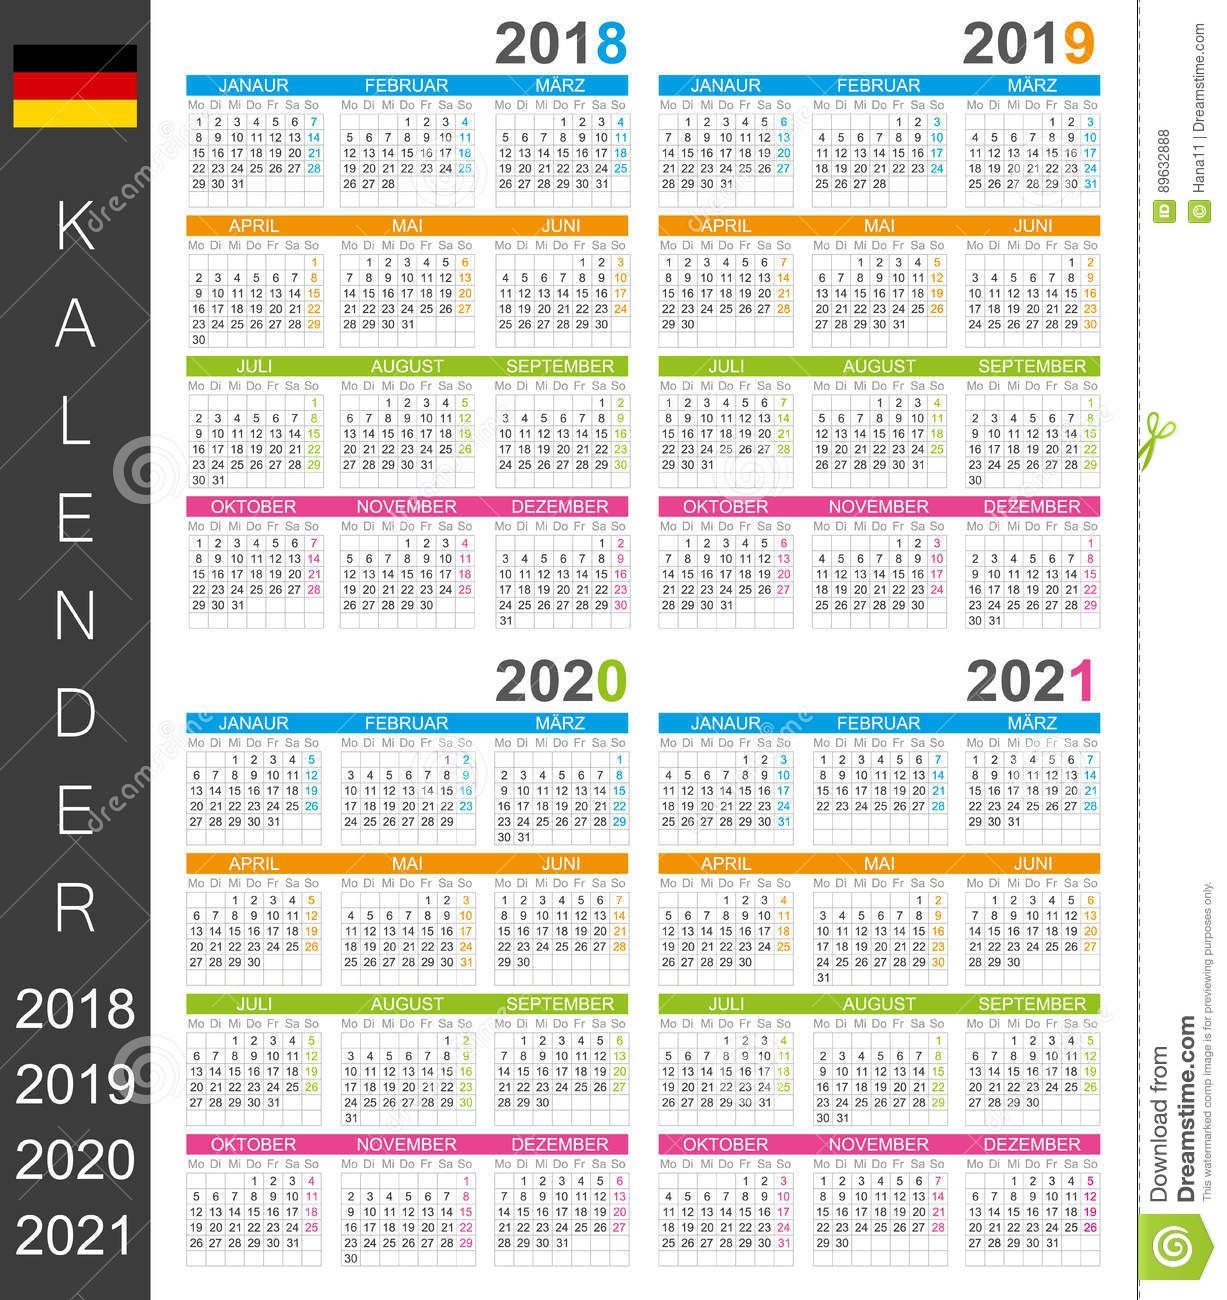 Calendar 2018-2021 Stock Illustration. Illustration Of Personal Calendar 2019 Germany Week Numbers